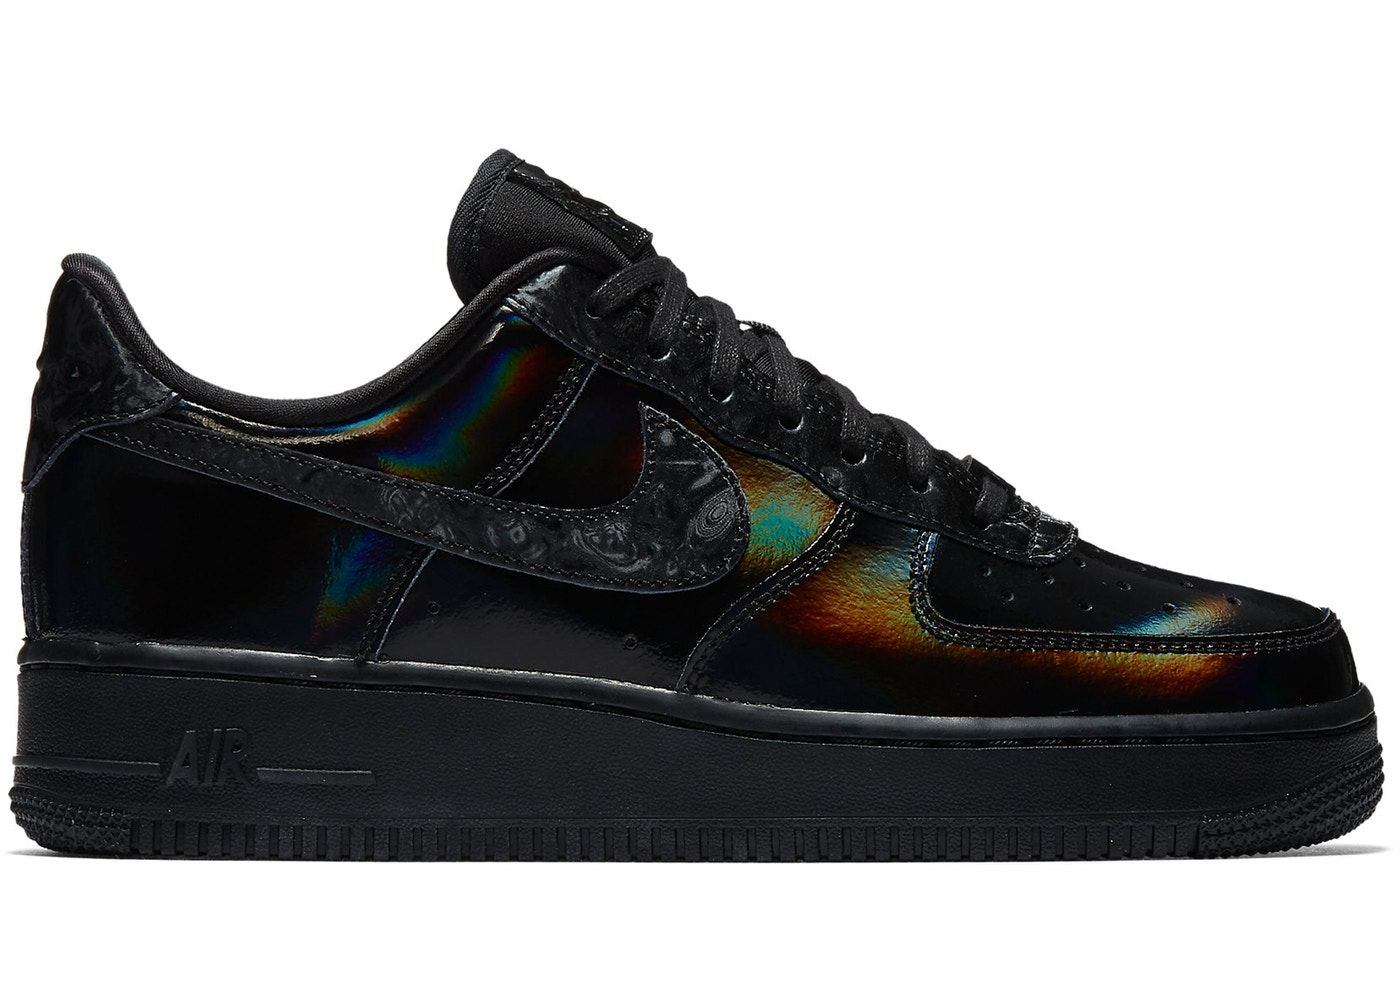 Check out the Air Force 1 Low Lux All-Star 2018 Black (W) available on  StockX 74b061b2489d